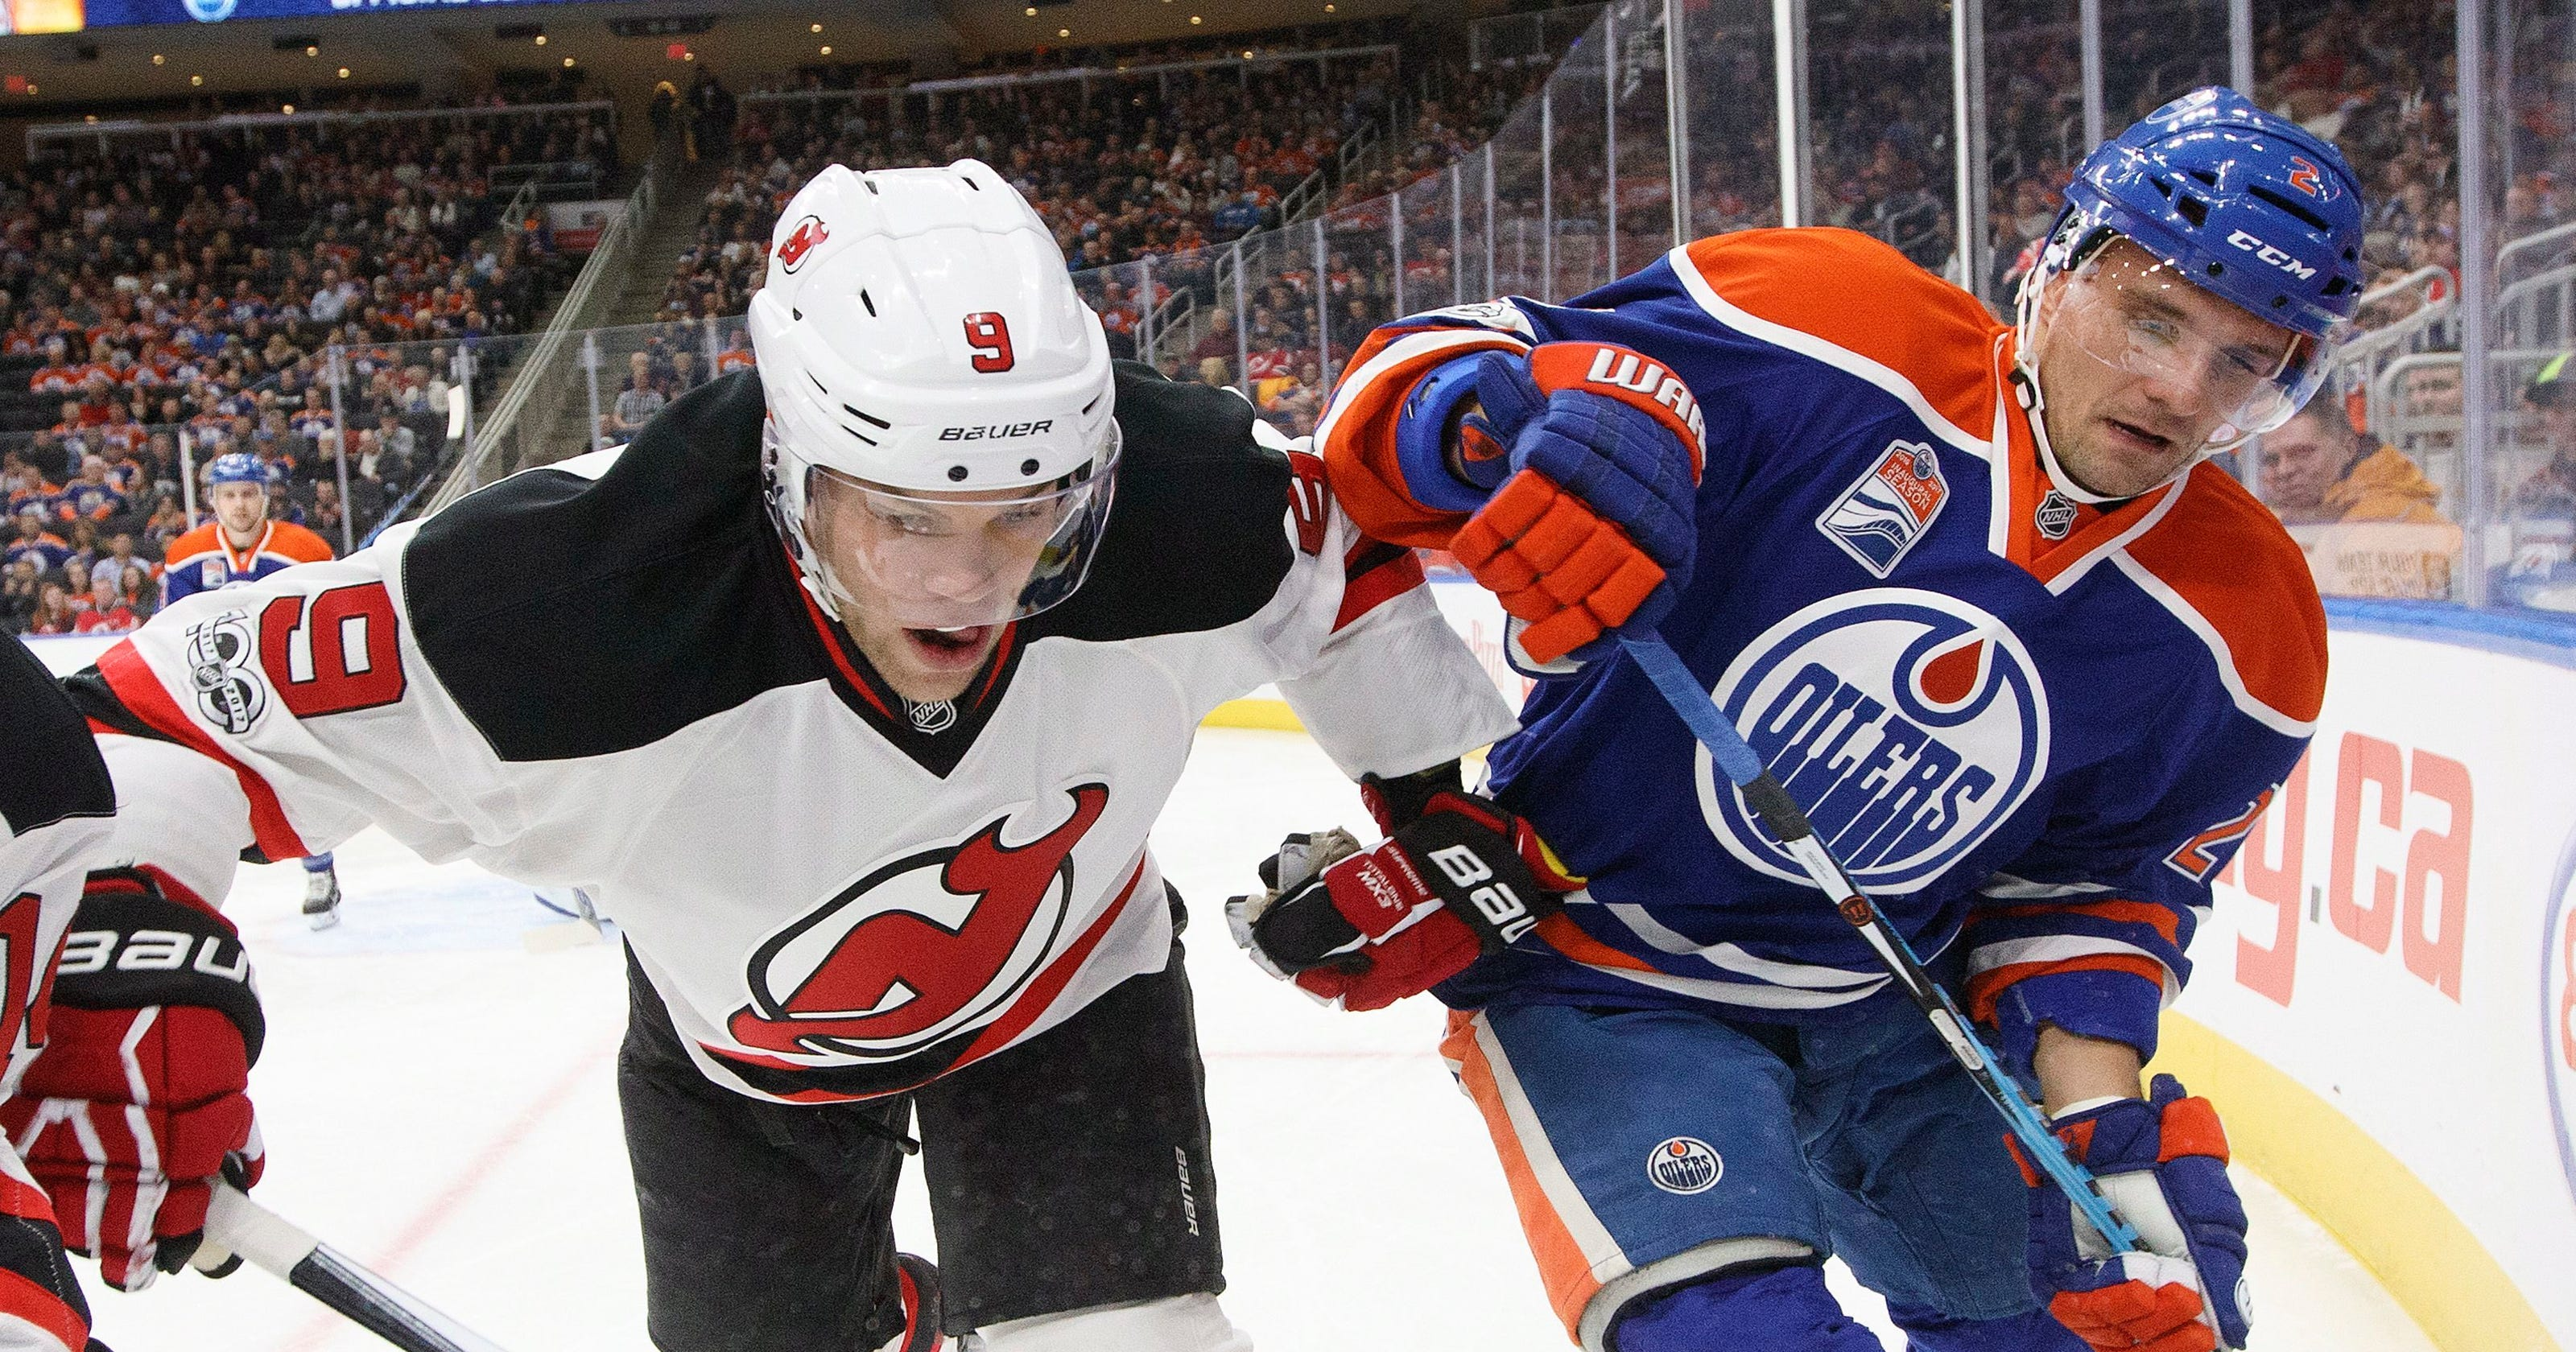 Game 12 Live Blog  Taylor Hall scores but Oilers beat Devils 6-3 25641b767